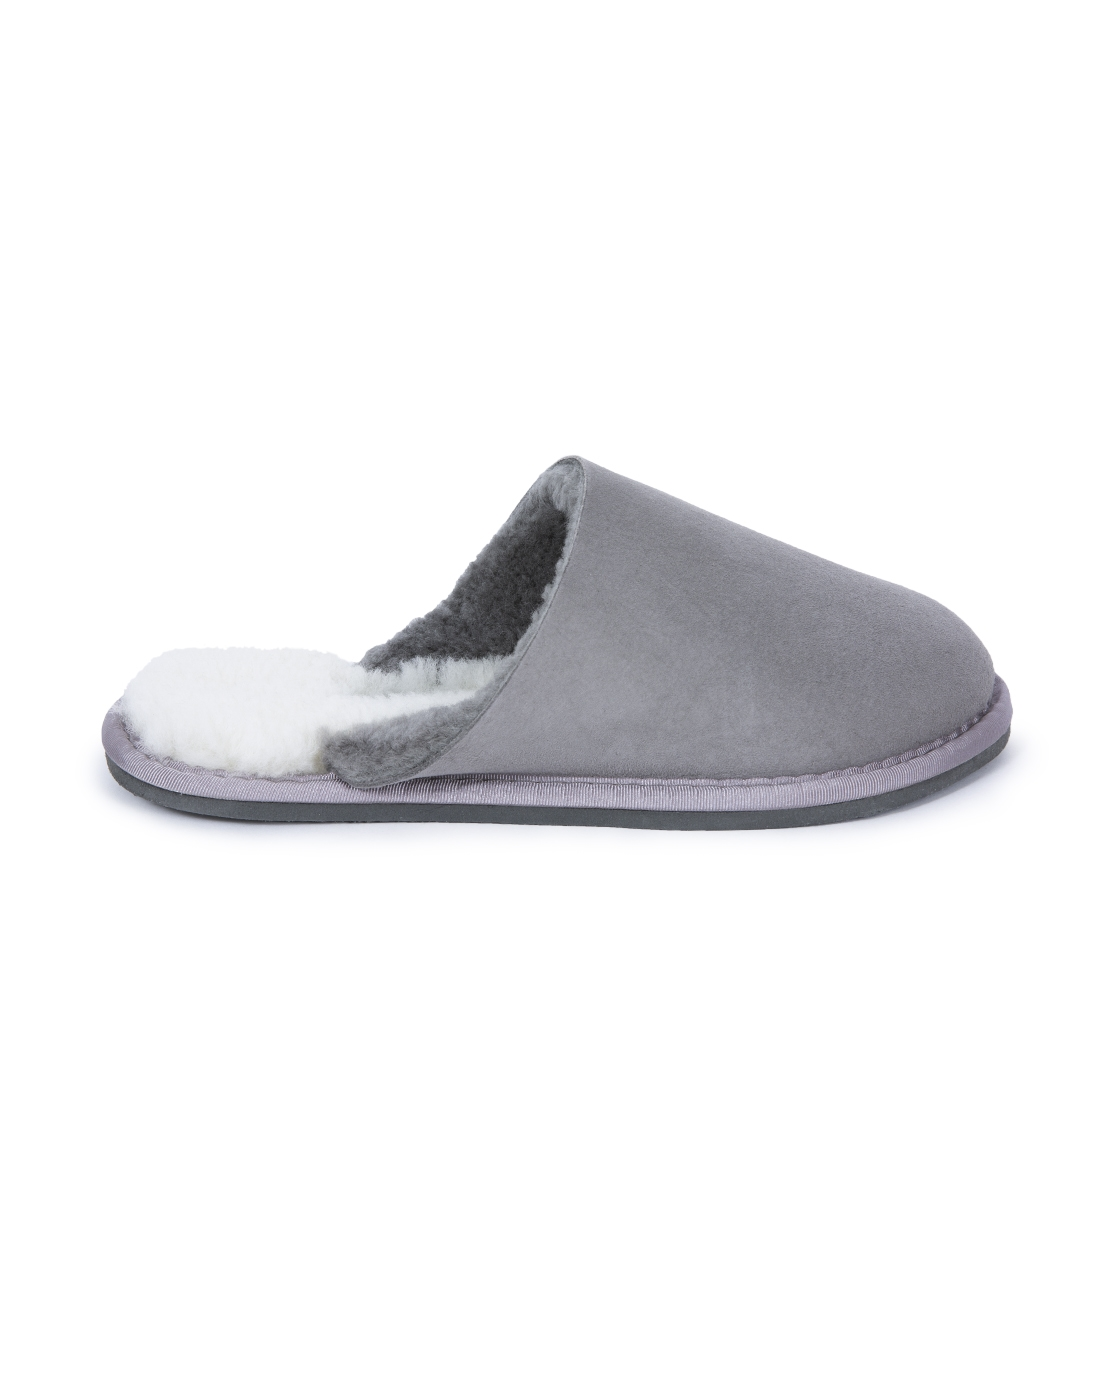 midford_ladies mule_light grey_side.jpg